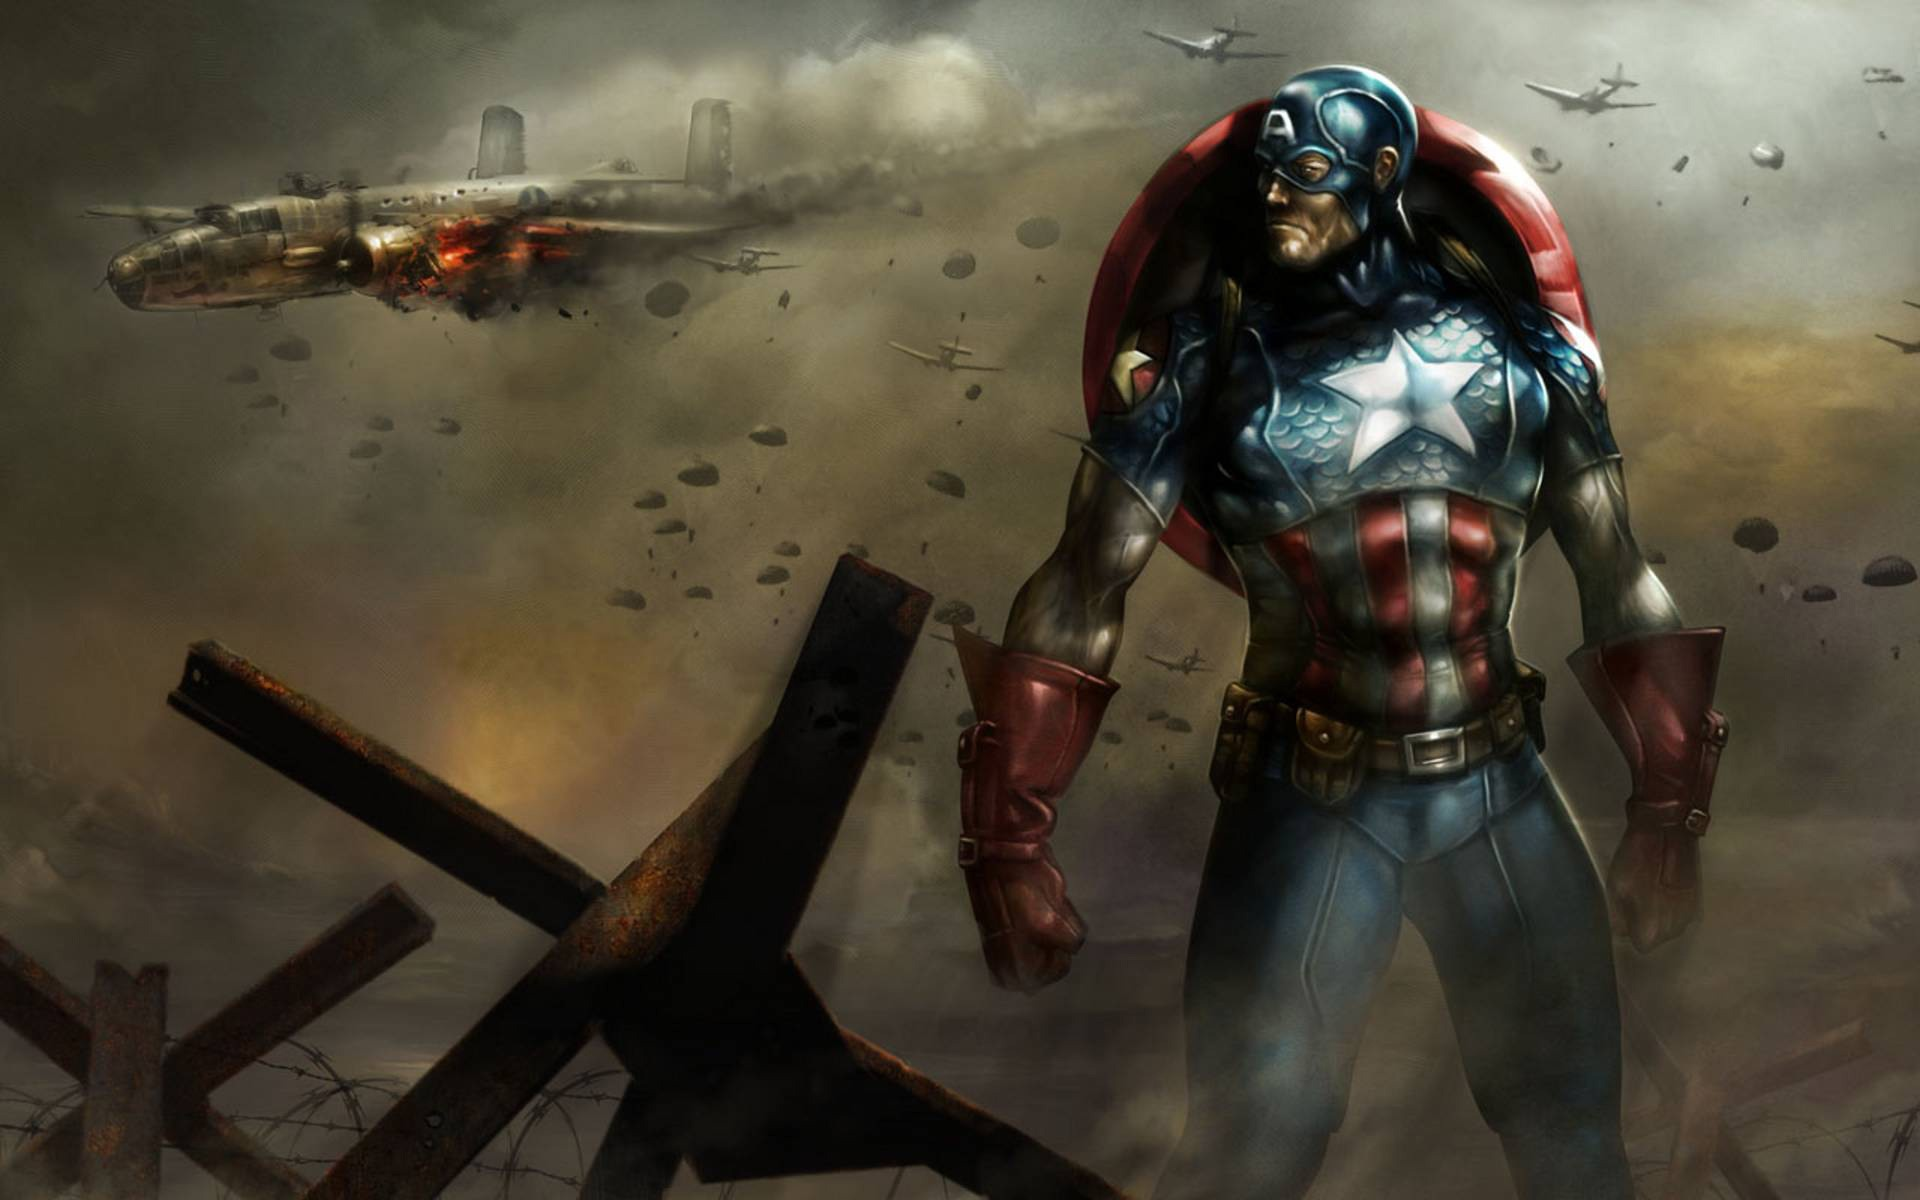 Civil War Captain America Wallpapers HD And Background cute 1920x1200